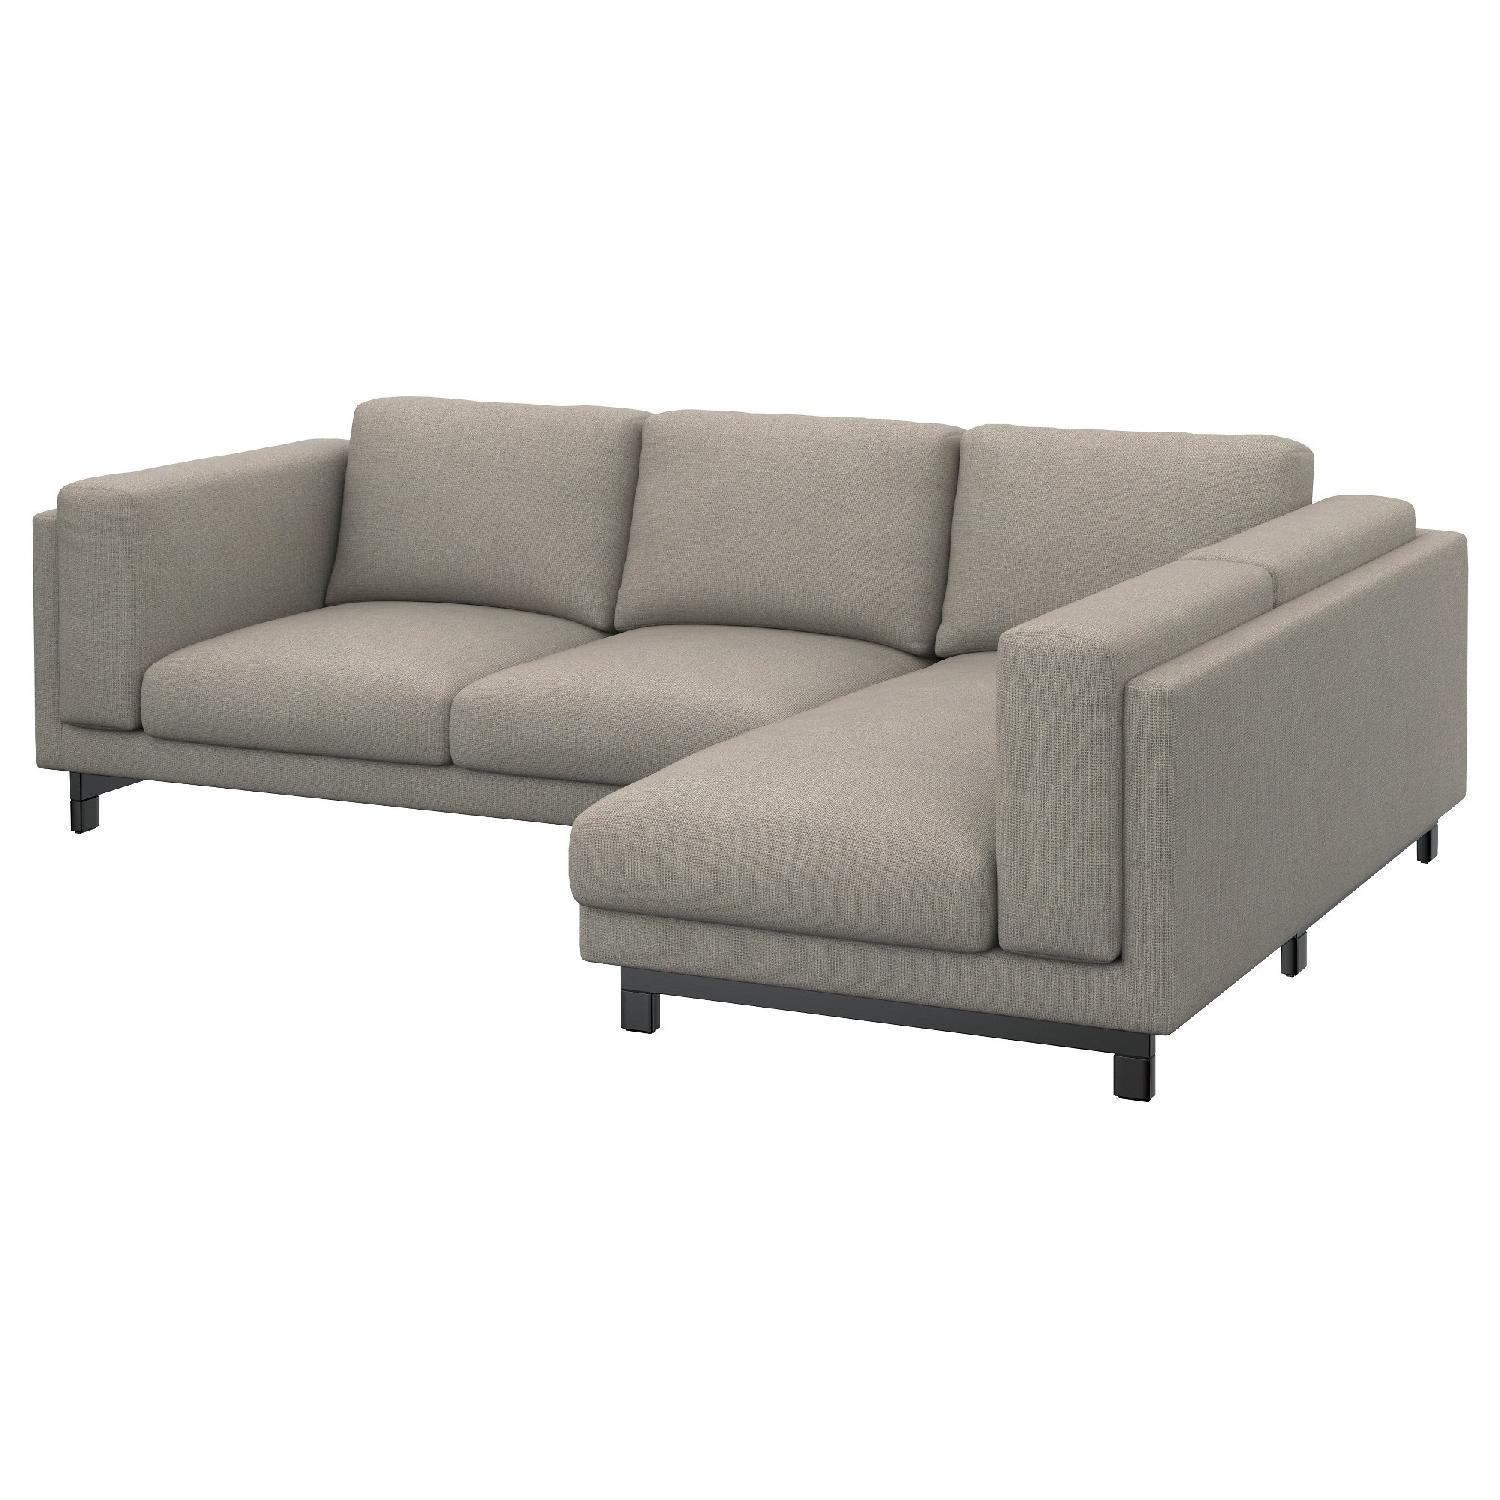 Ikea Nockeby Blue Grey 2 Piece Sectional Sofa ...  sc 1 st  AptDeco : 2 piece sectional sofa - Sectionals, Sofas & Couches